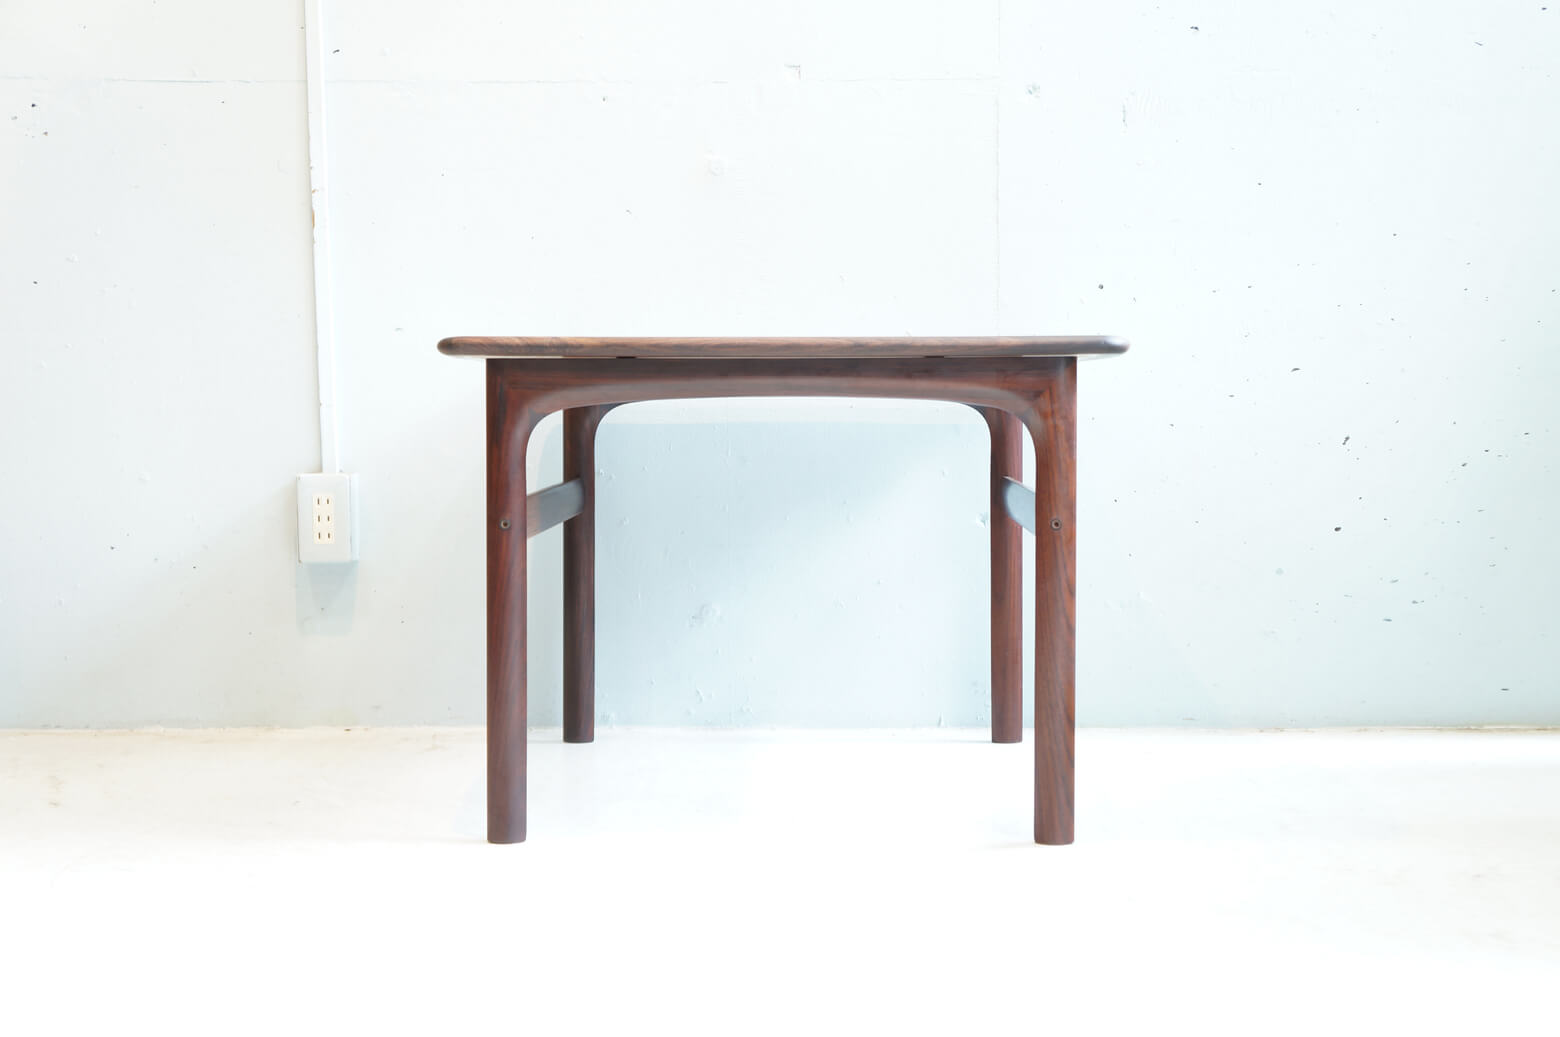 RASMUS SOLBERG CABINET MAKER WESTNOFA NORWAY ROSE WOOD COFFEE TABLE DESIGN BY ARNE HALVORSEN / ノルウェー ビンテージ ローズウッド コーヒーテーブル